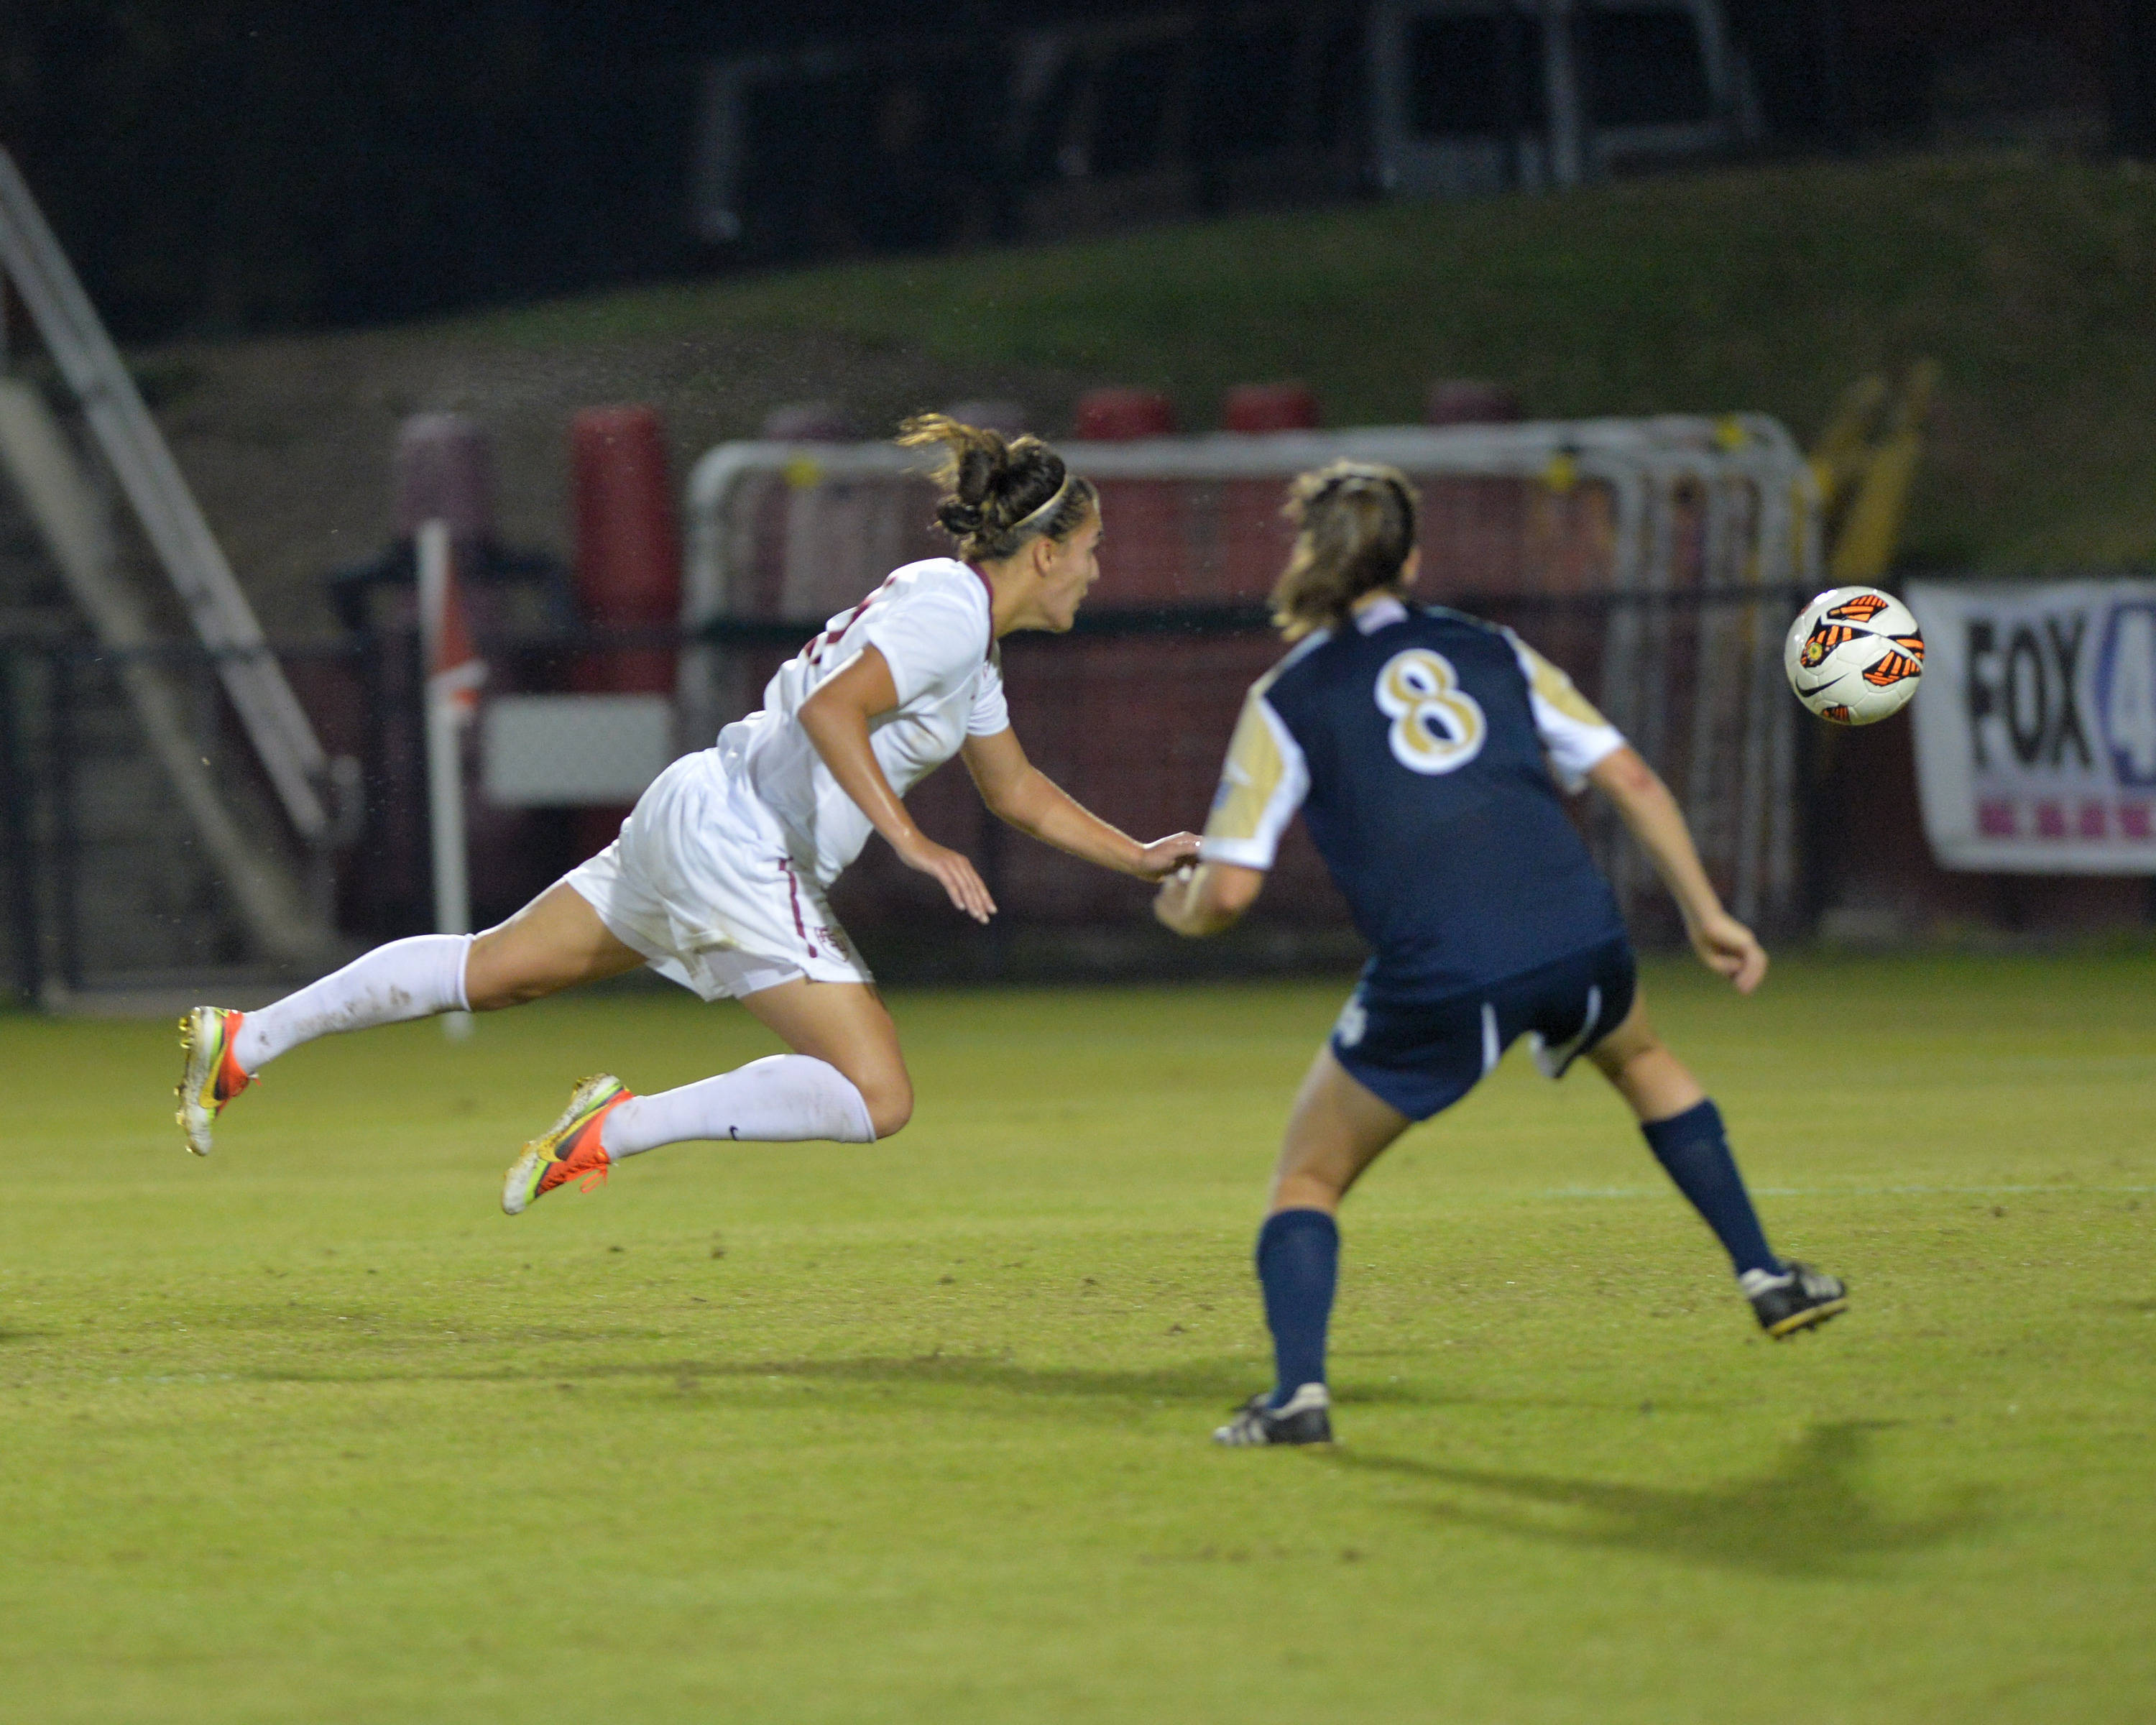 Marta Bakowska-Mathews with the diving header in double overtime to score the golden goal.